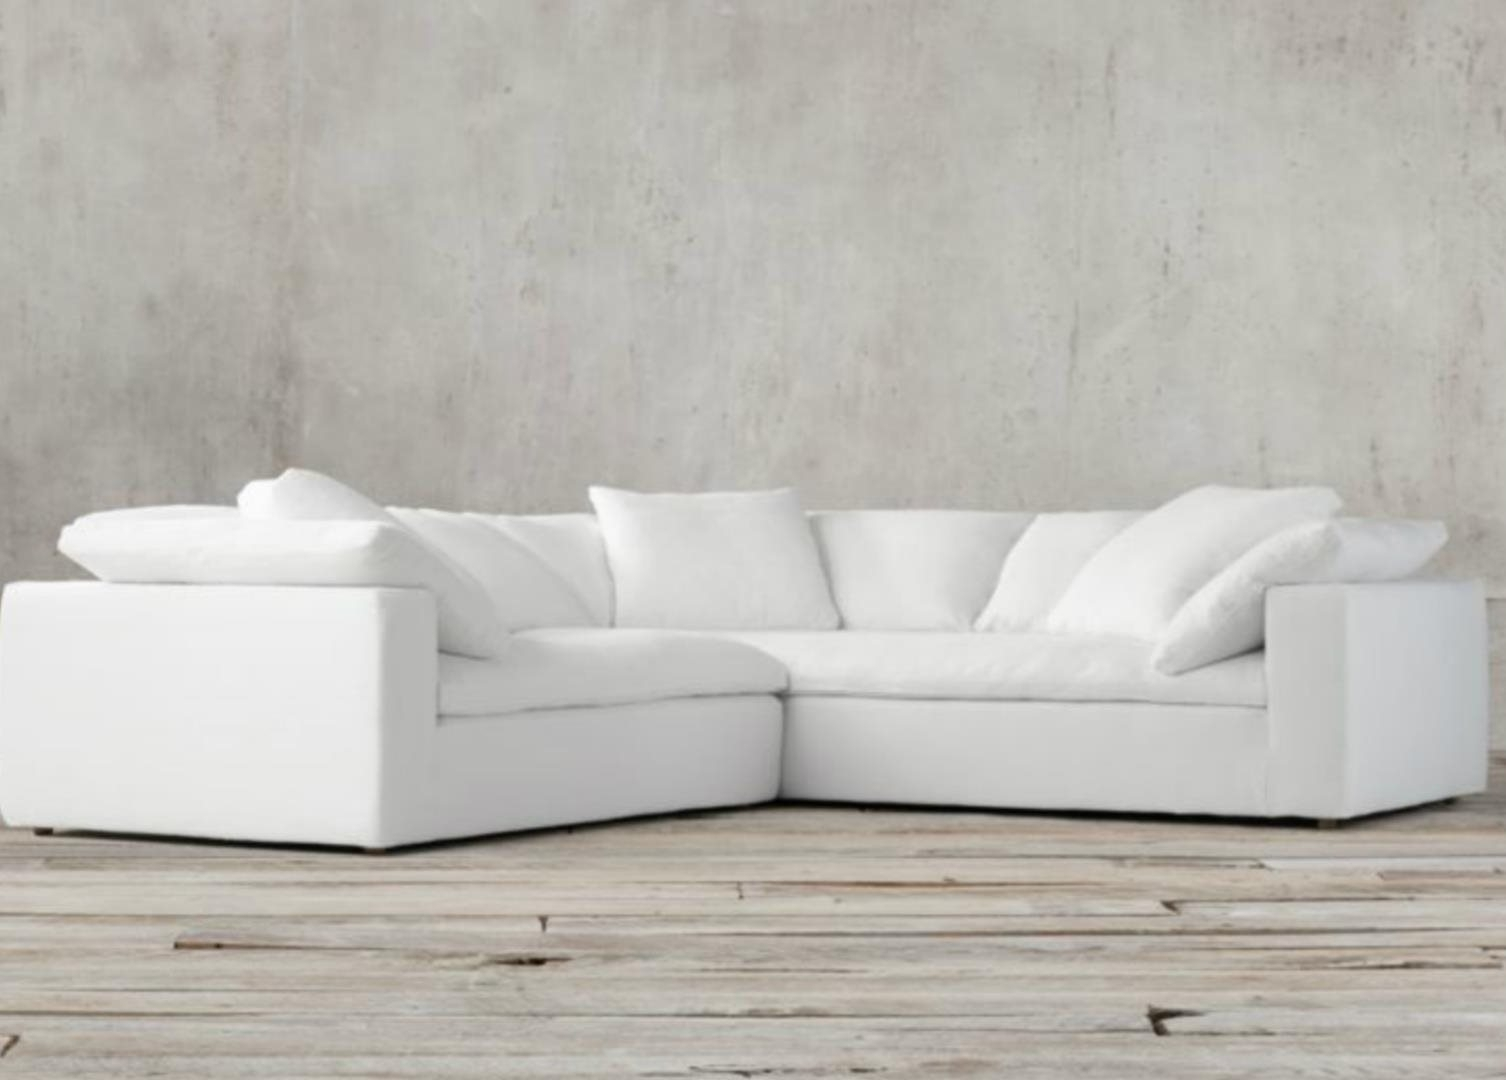 Restoration Hardware Cloud Modular Slipcovered Sofa: For Sale In San for Joining Hardware Sectional Sofas (Image 9 of 10)